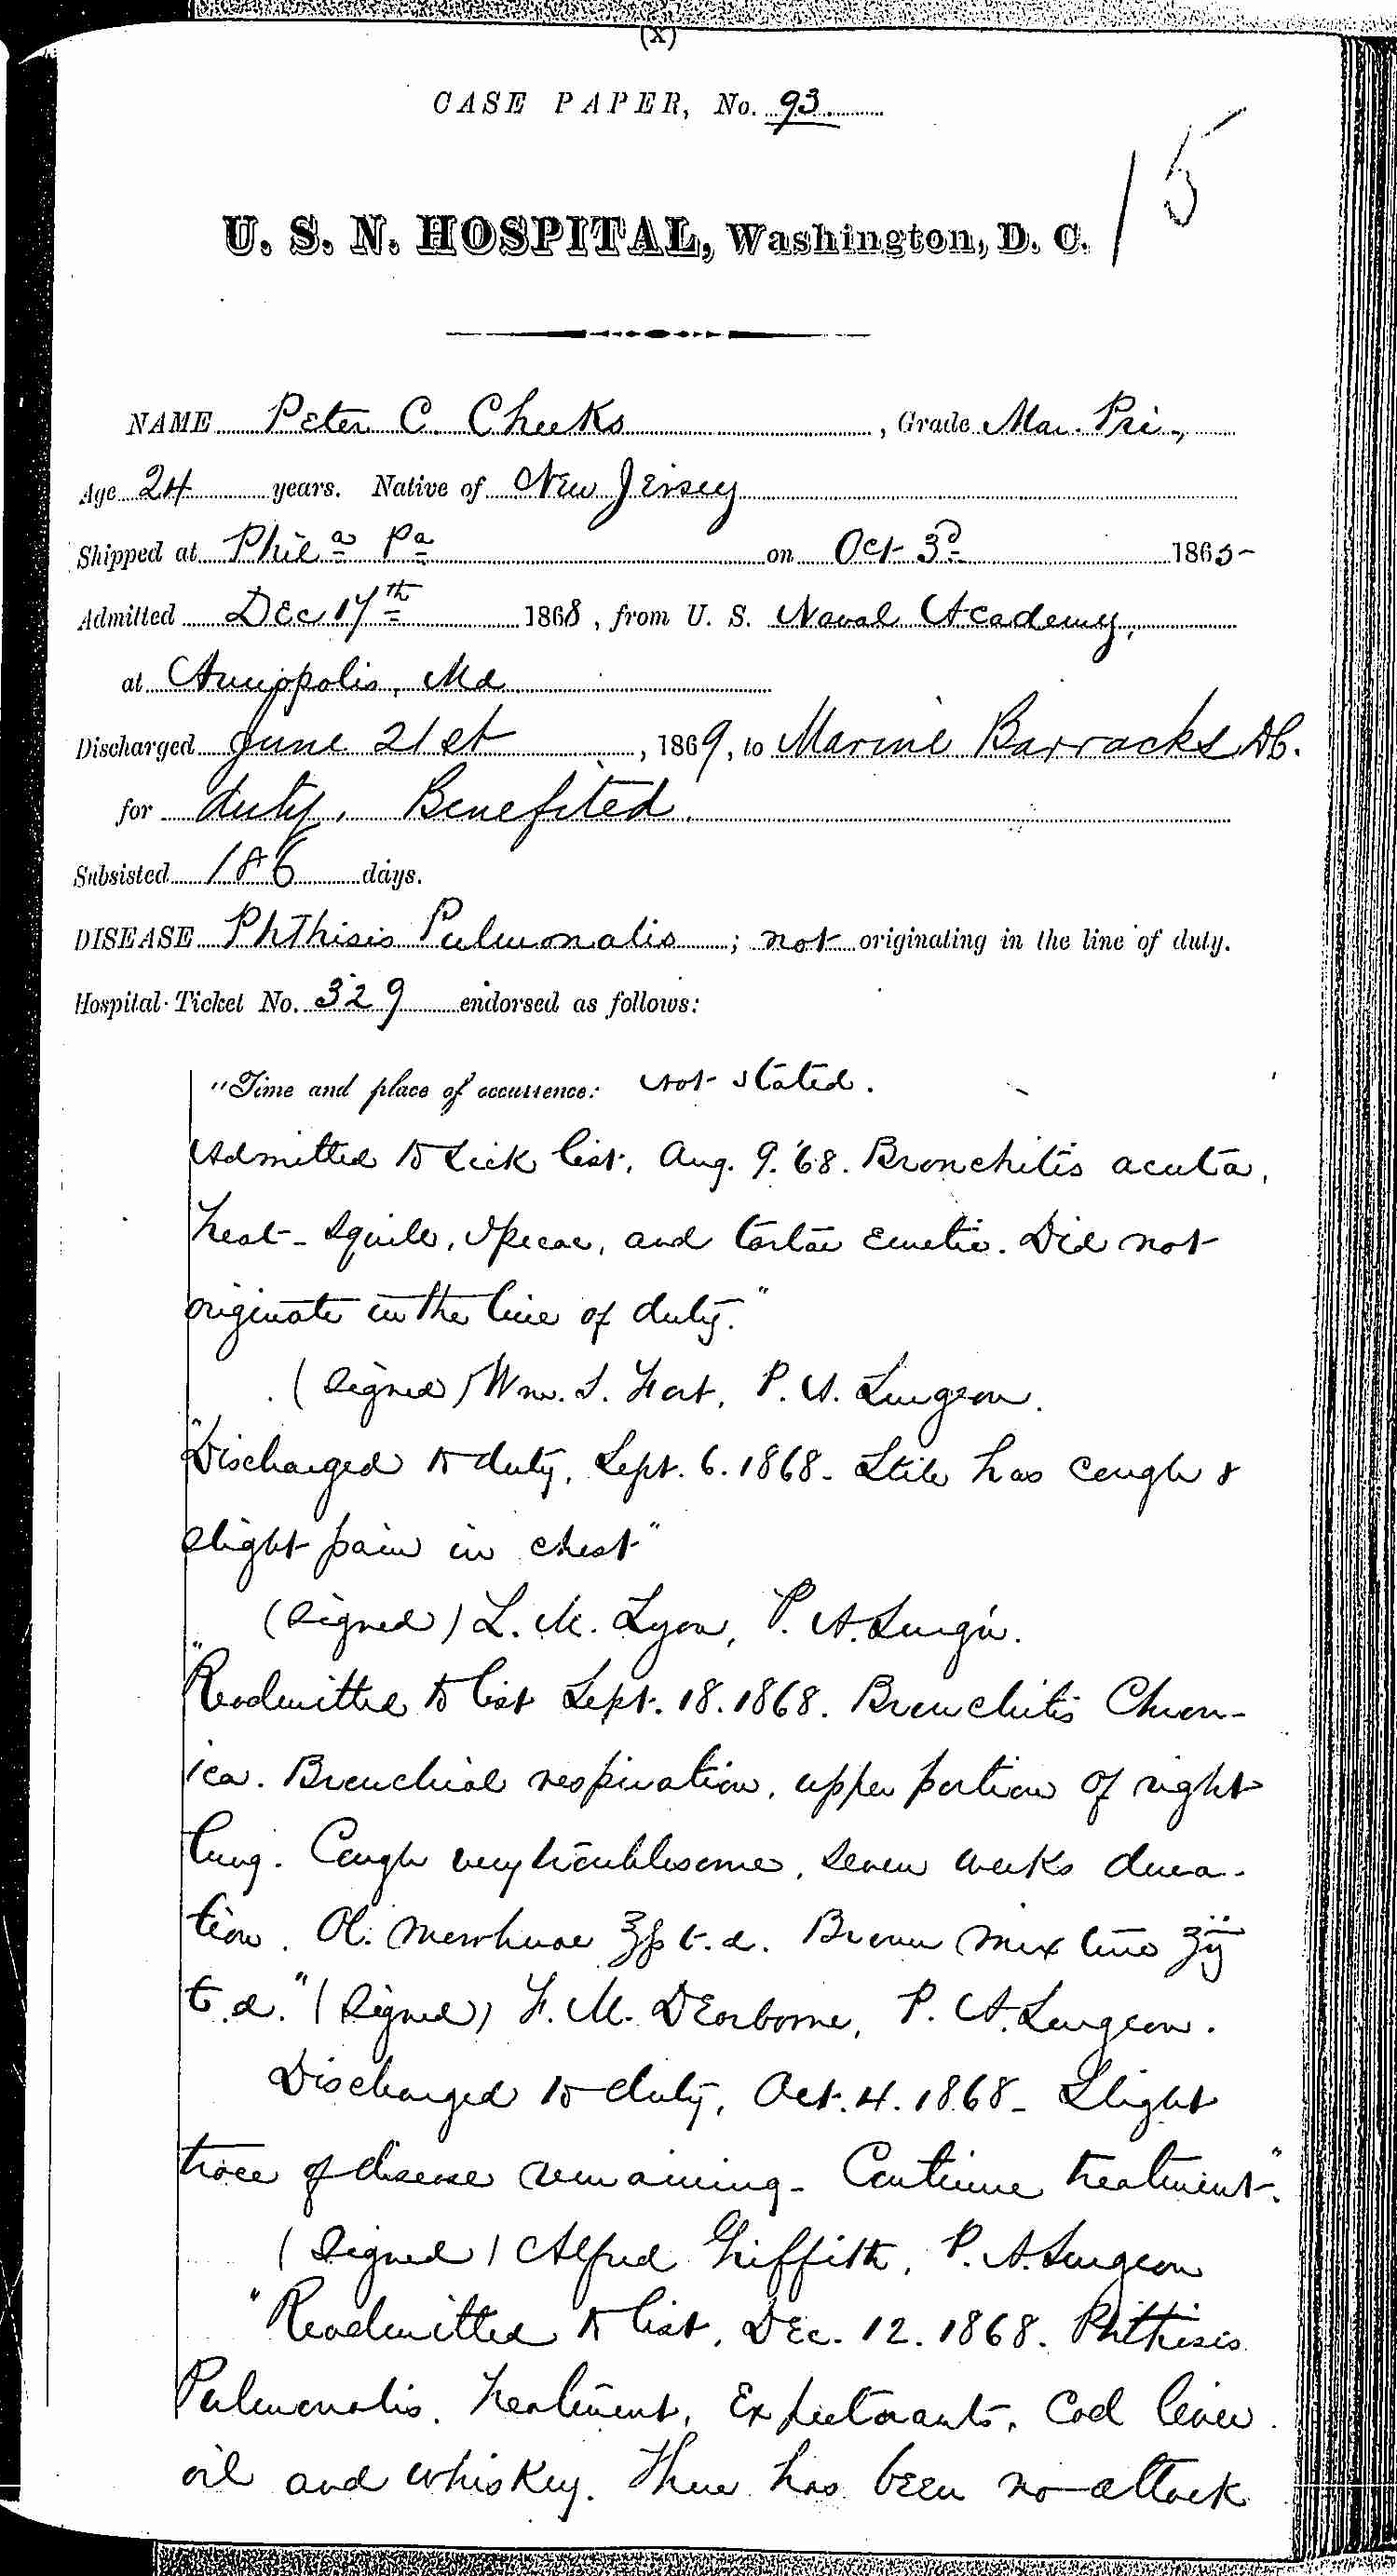 Entry for Peter C. Cheeks (page 1 of 16) in the log Hospital Tickets and Case Papers - Naval Hospital - Washington, D.C. - 1868-69